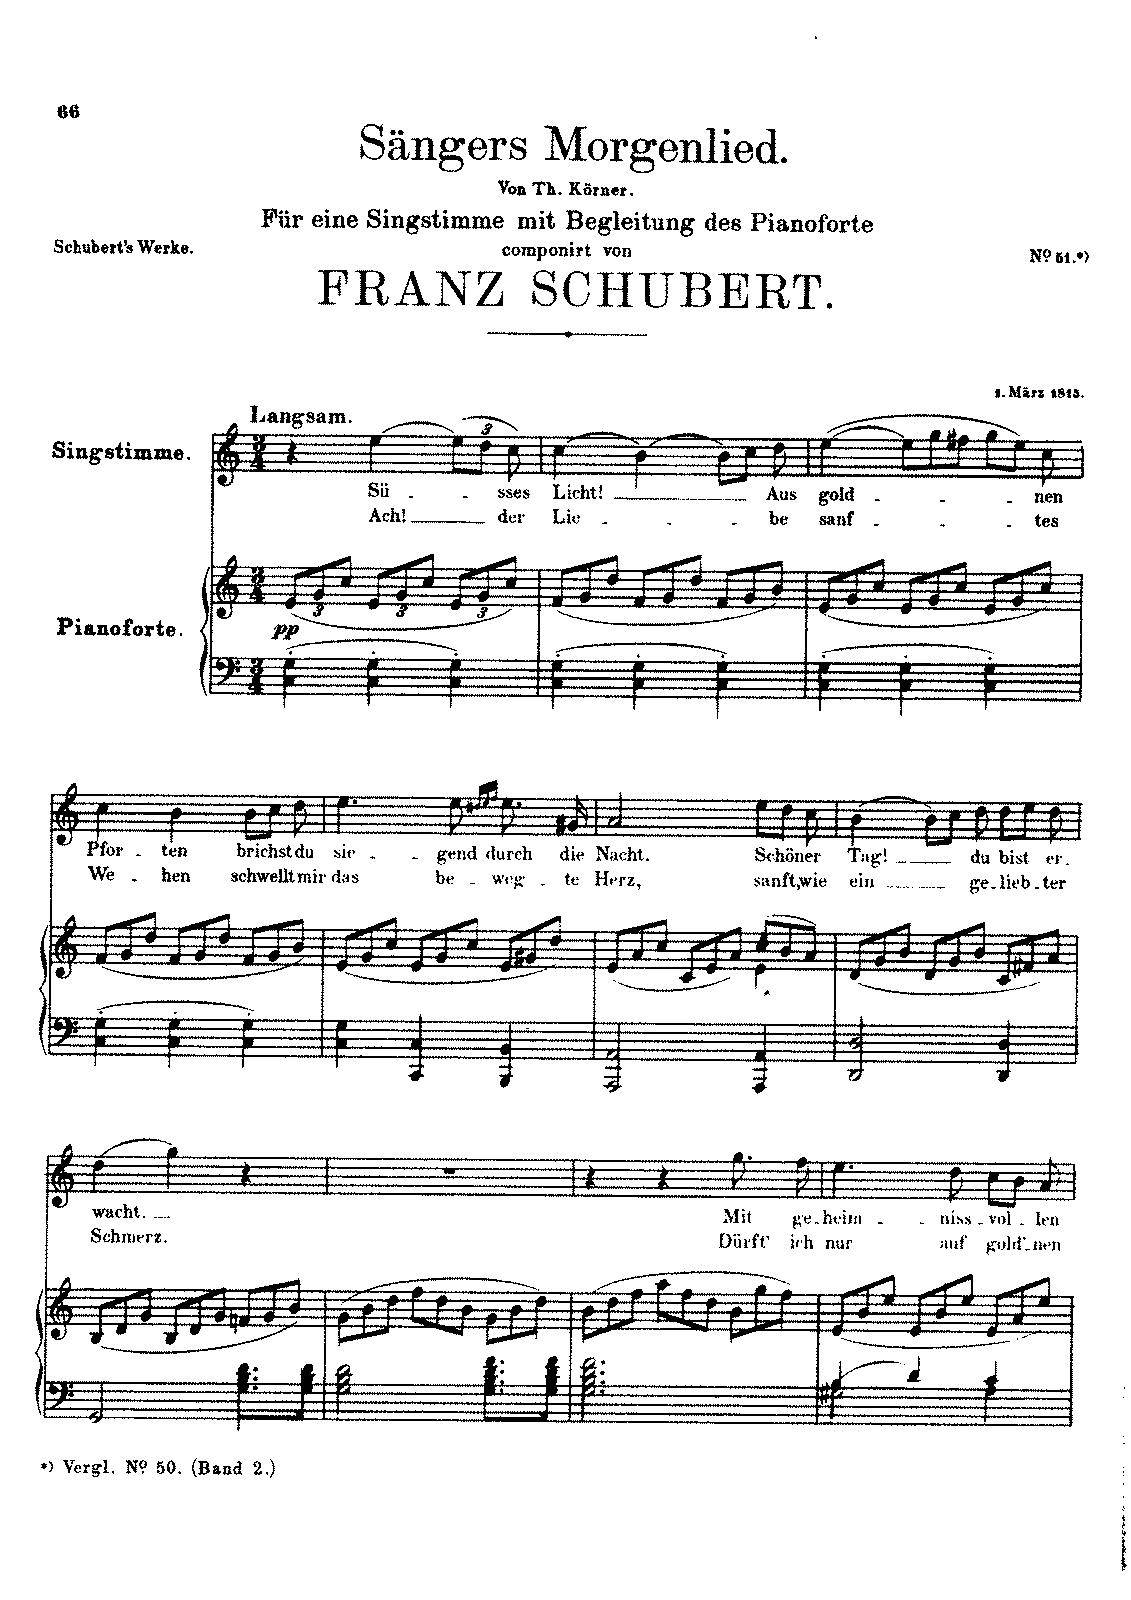 SchubertD165 Sängers Morgenlied 2nd version.pdf